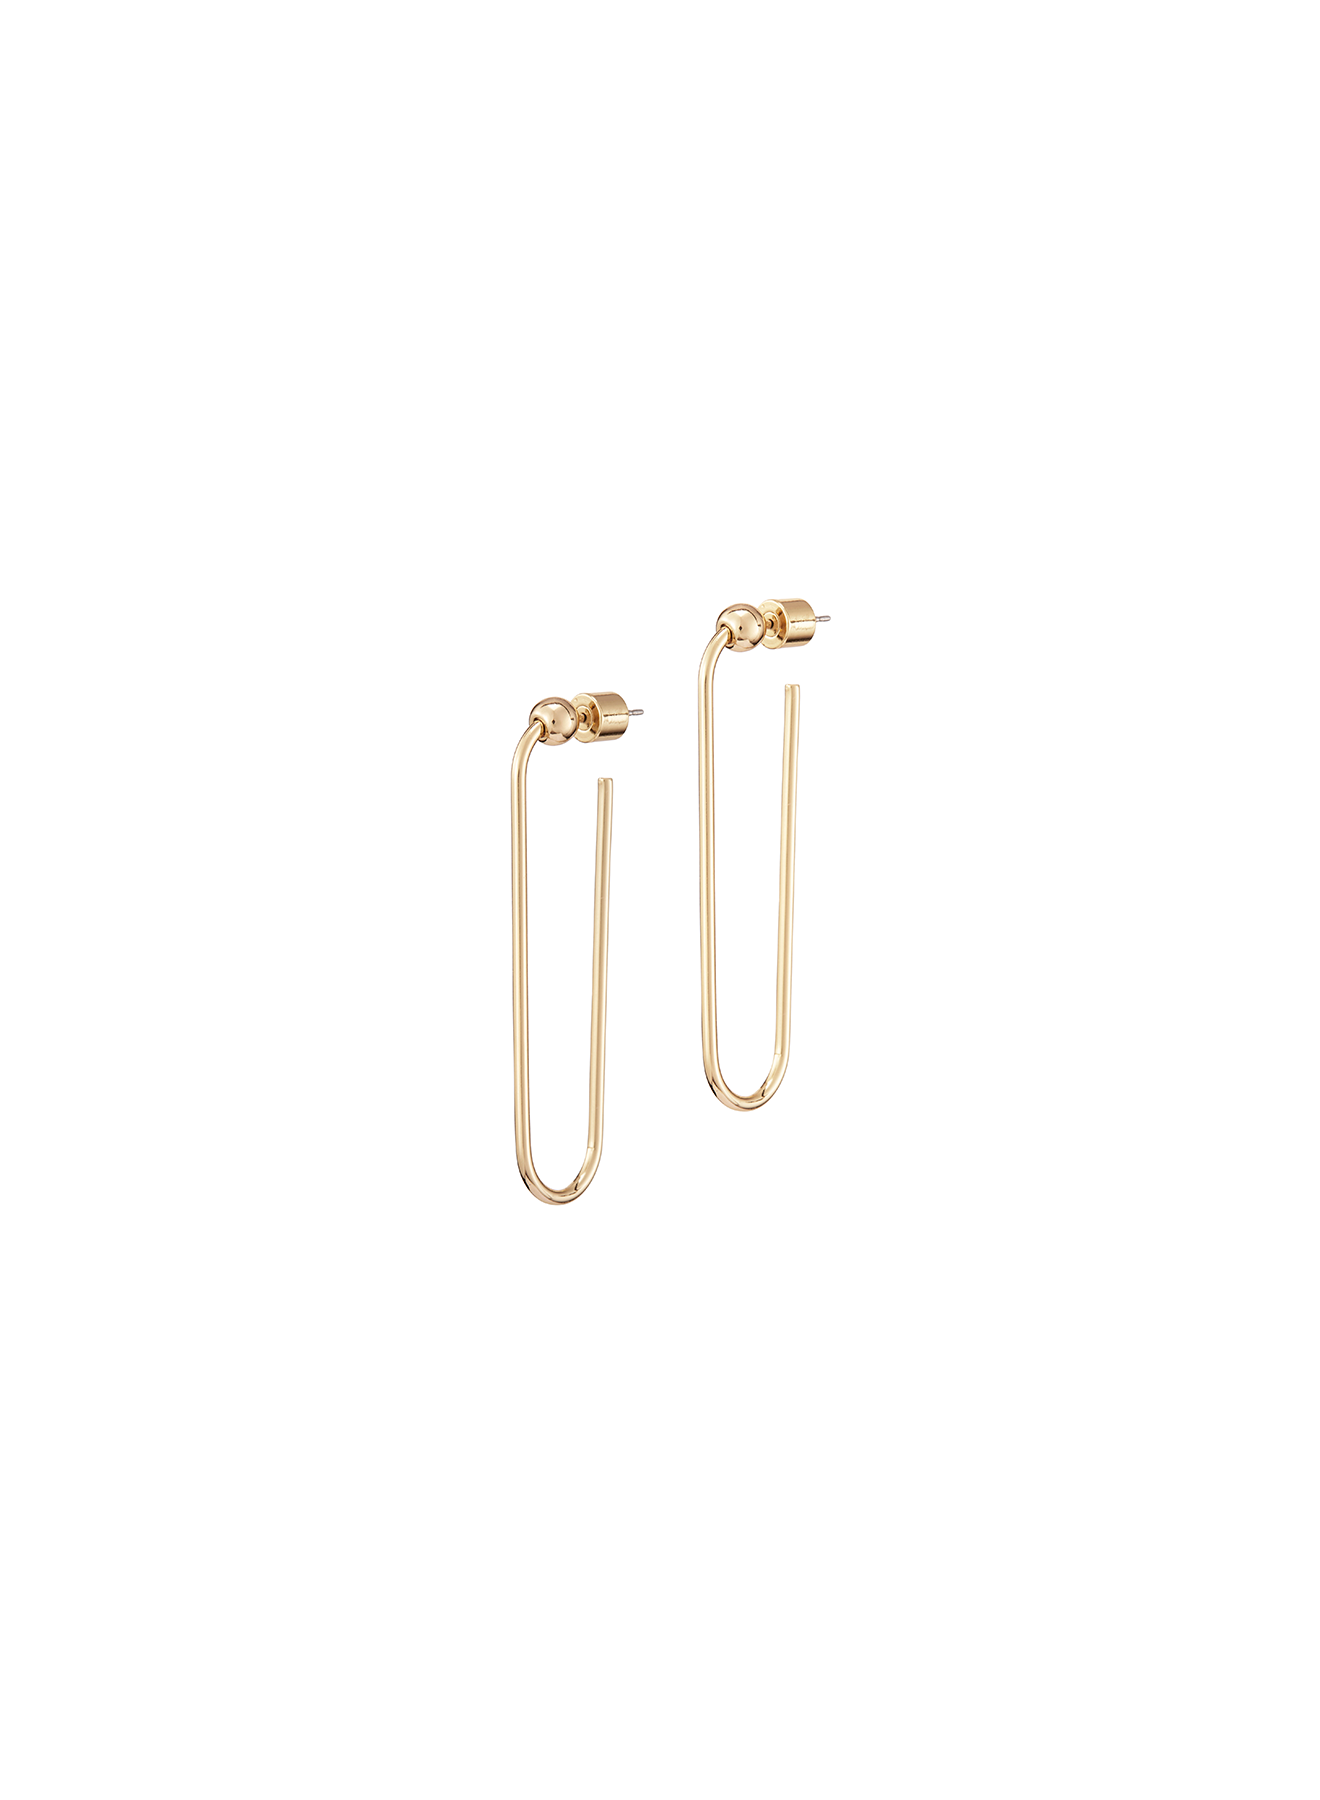 JENNY BIRD - ICON HOOPS LONG IN GOLD